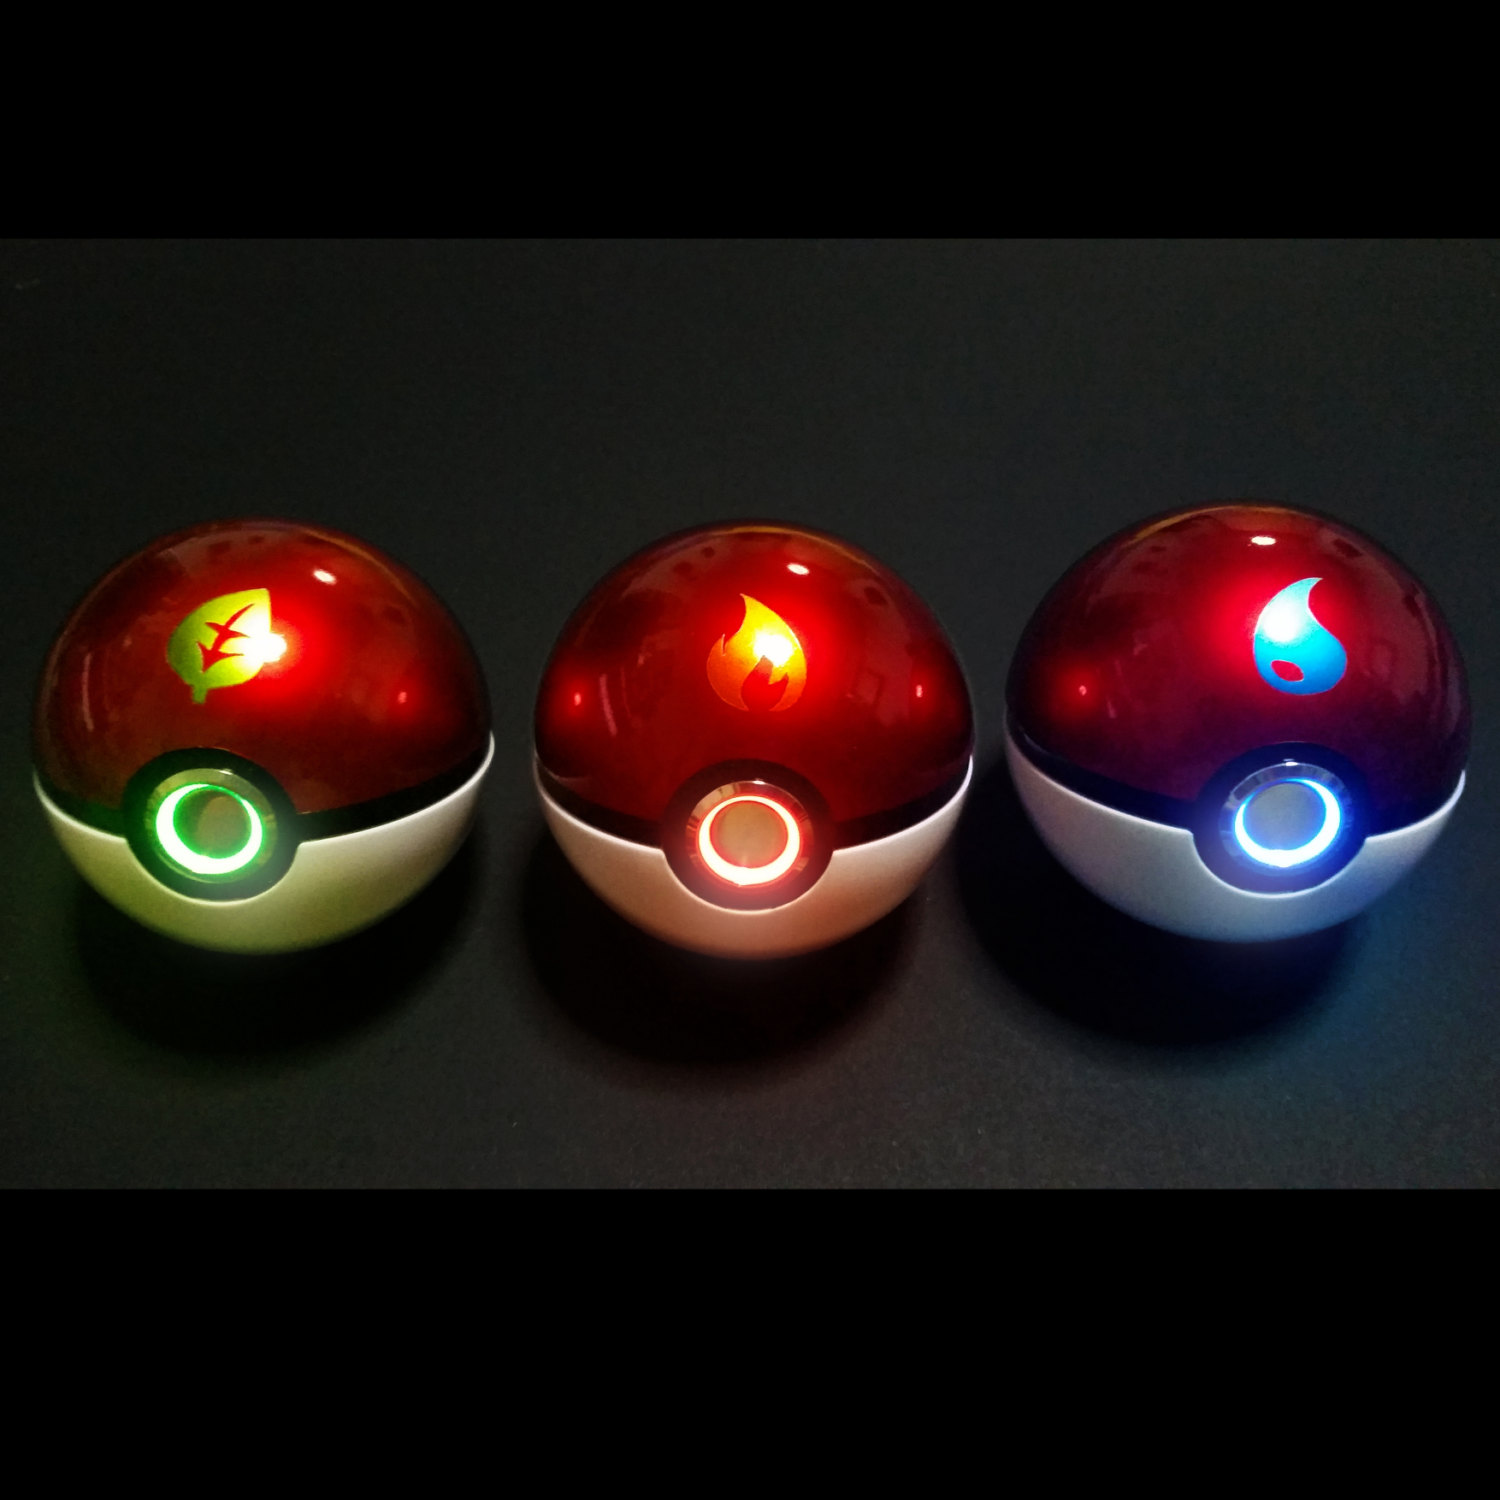 Drawn pokeball marble Etsy Collector ULTIMATE Ringlight Item